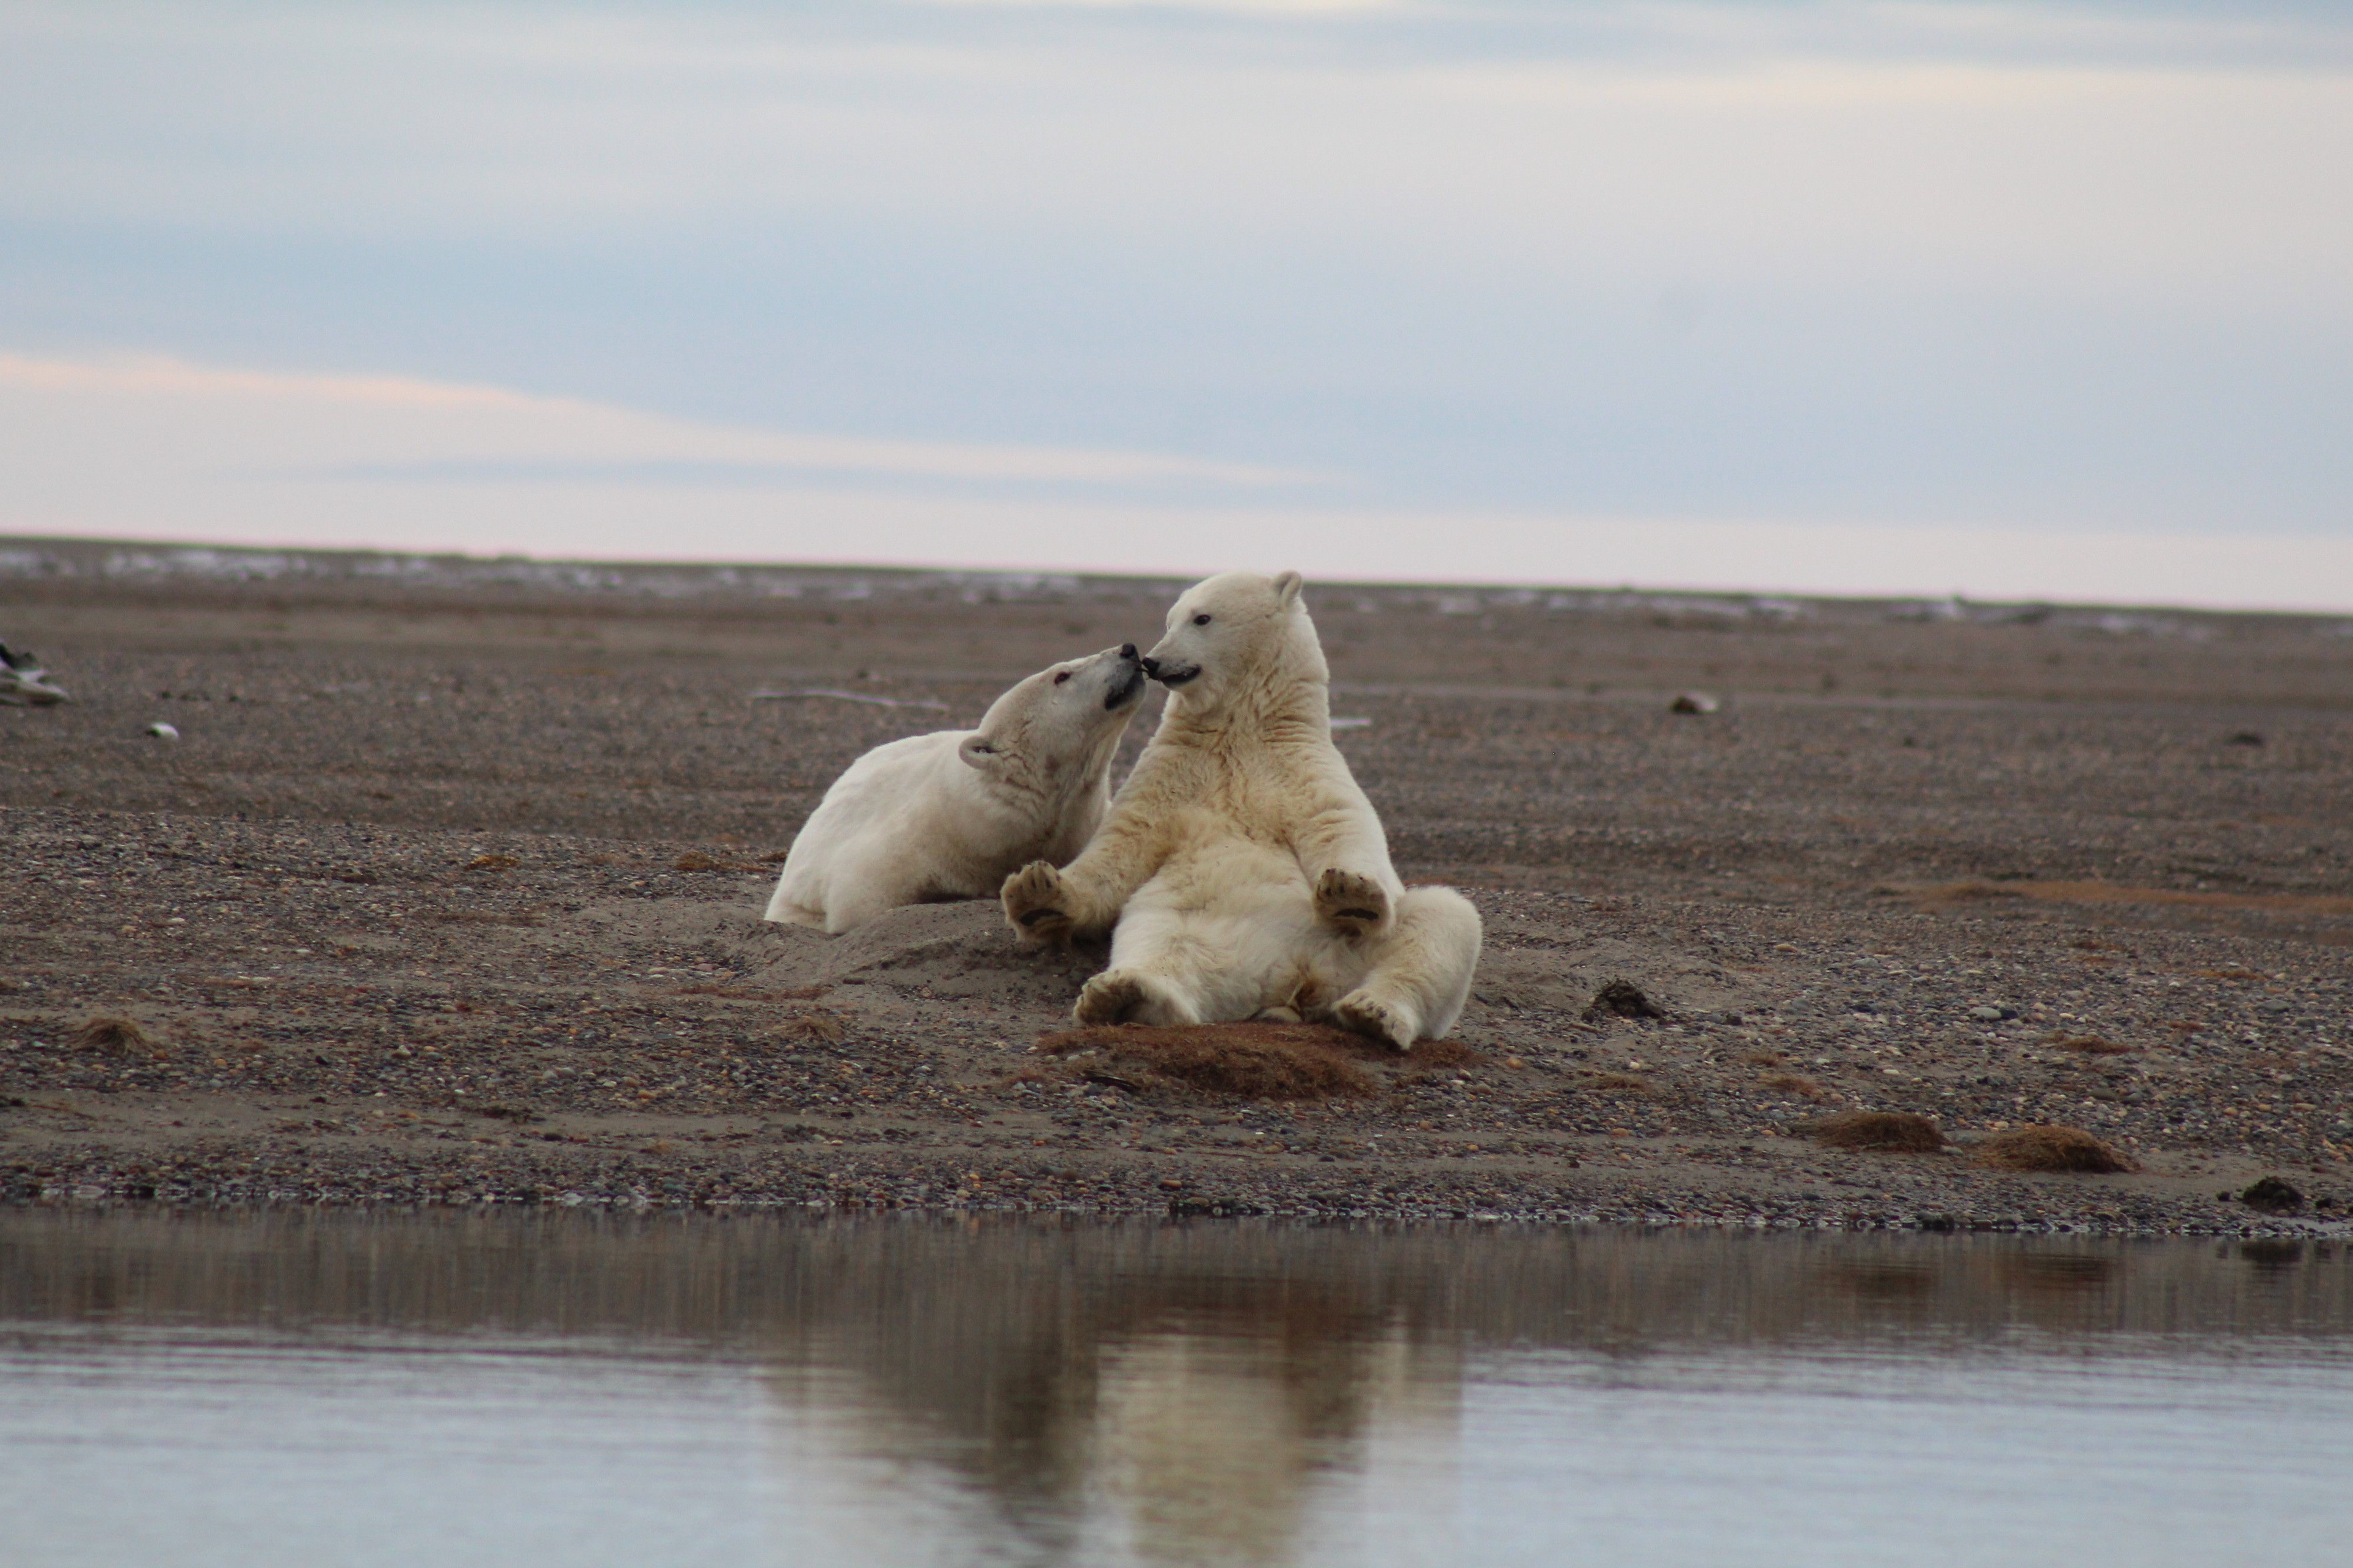 An adult polar bear sits on its haunches and touches noses with a cub sitting nearby.